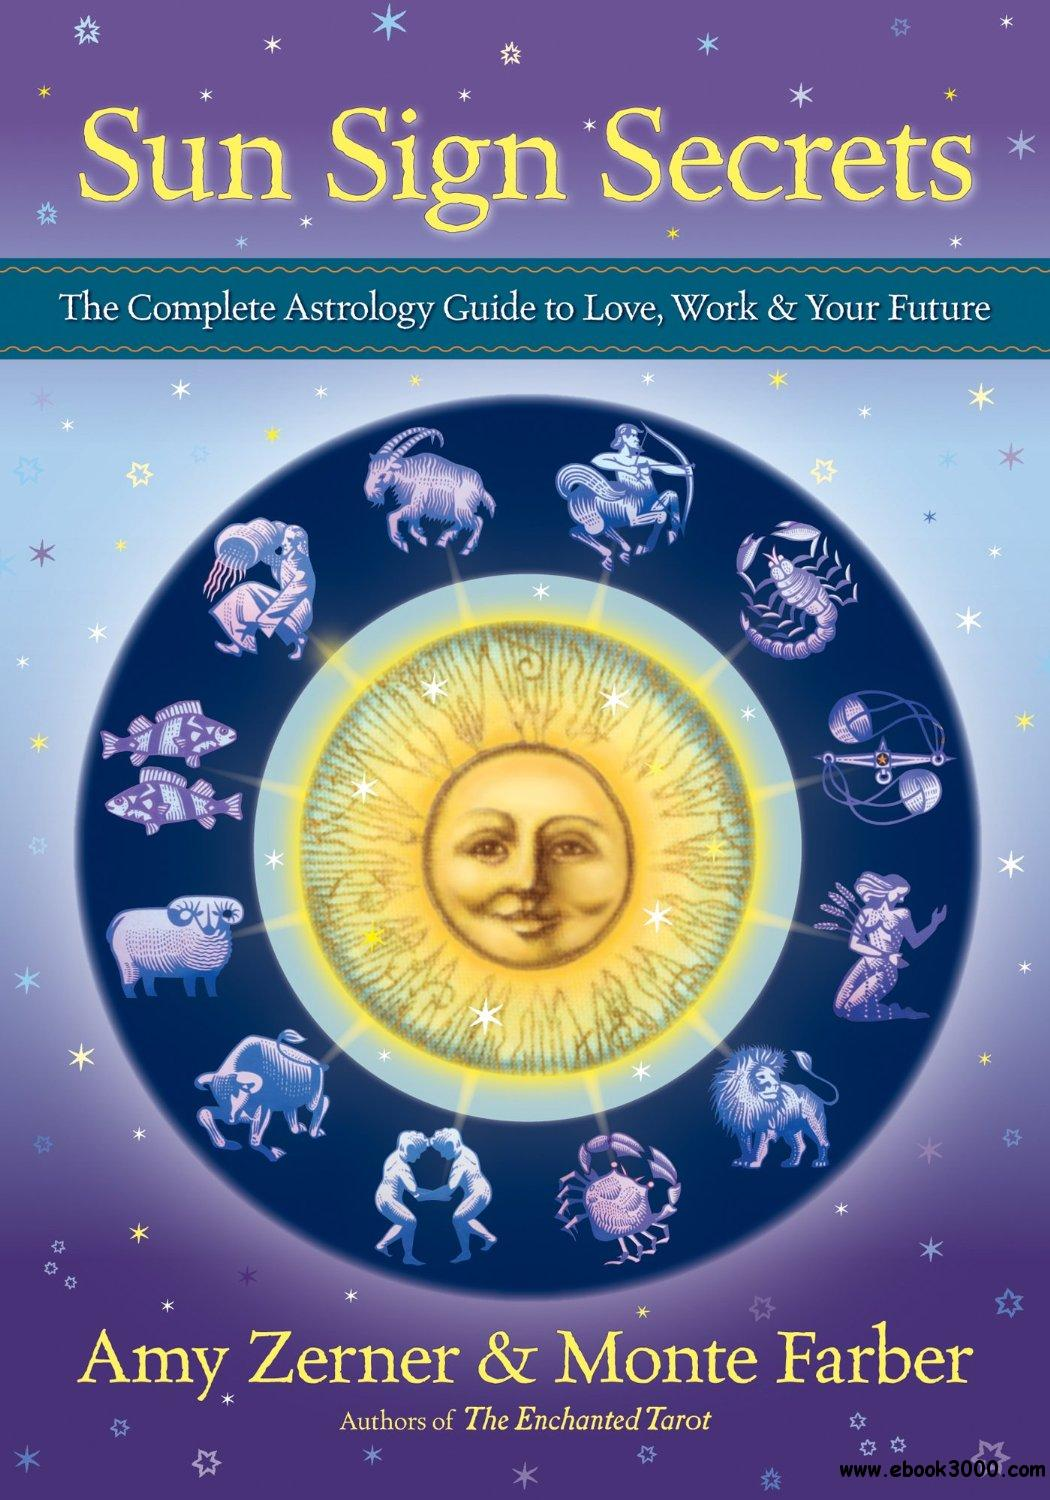 Sun Sign Secrets: The Complete Astrology Guide to Love, Work, and Your Future free download